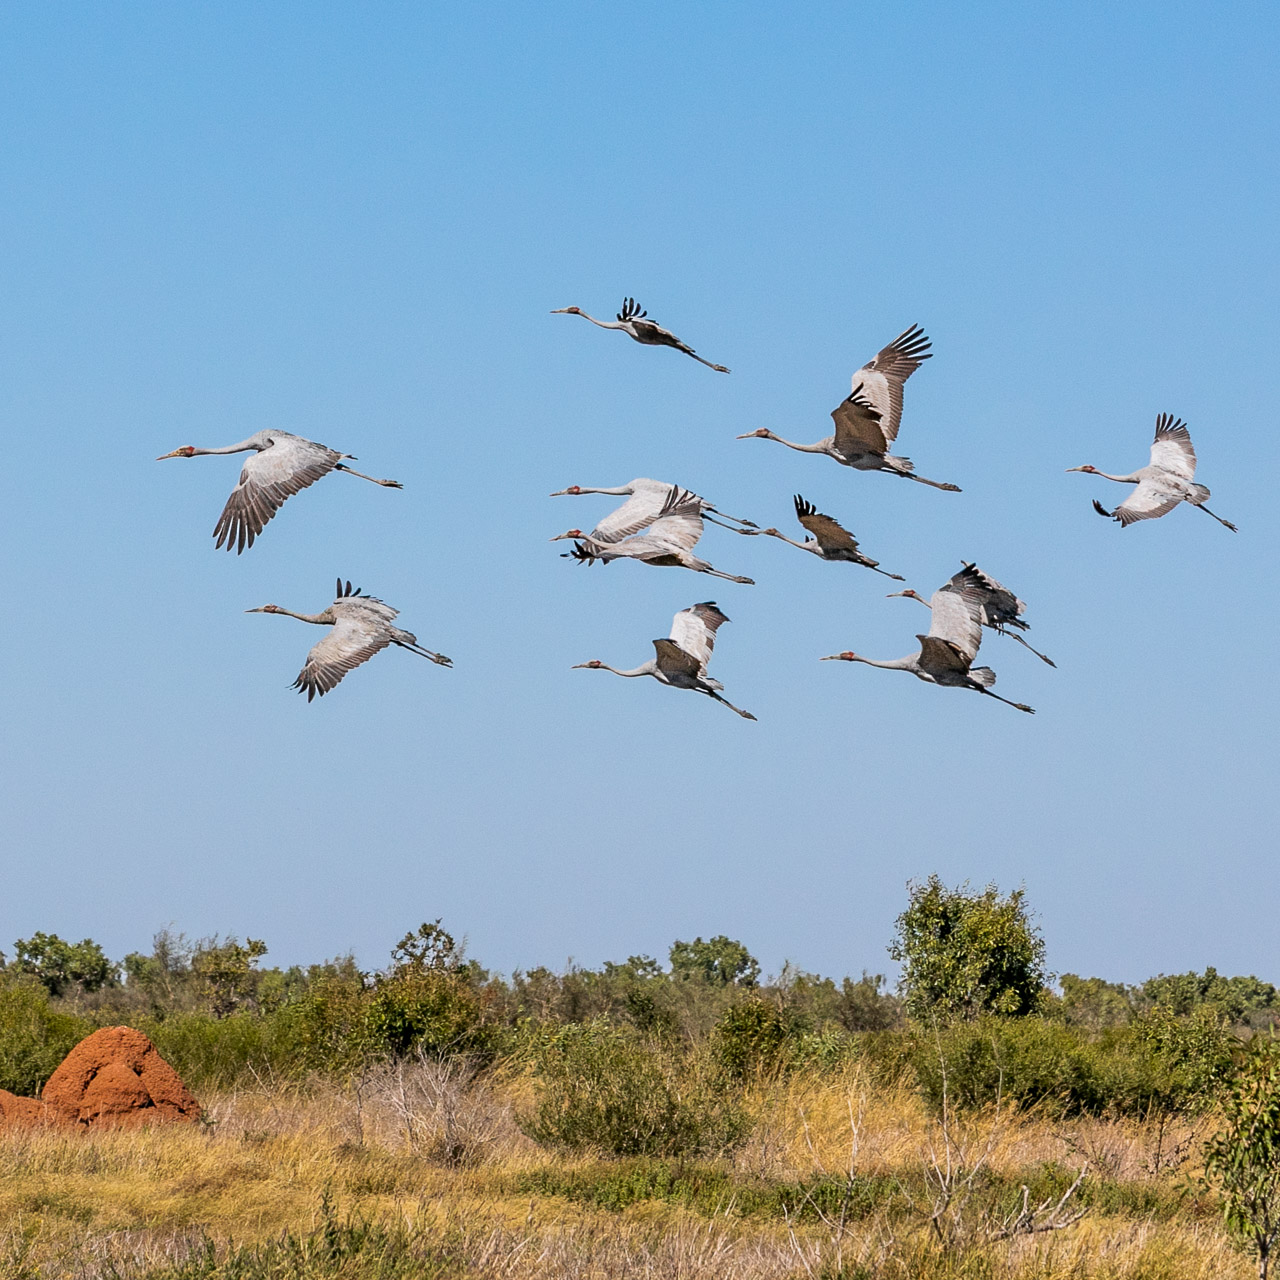 Brolgas in flight over the termite mounds in the Pilbara